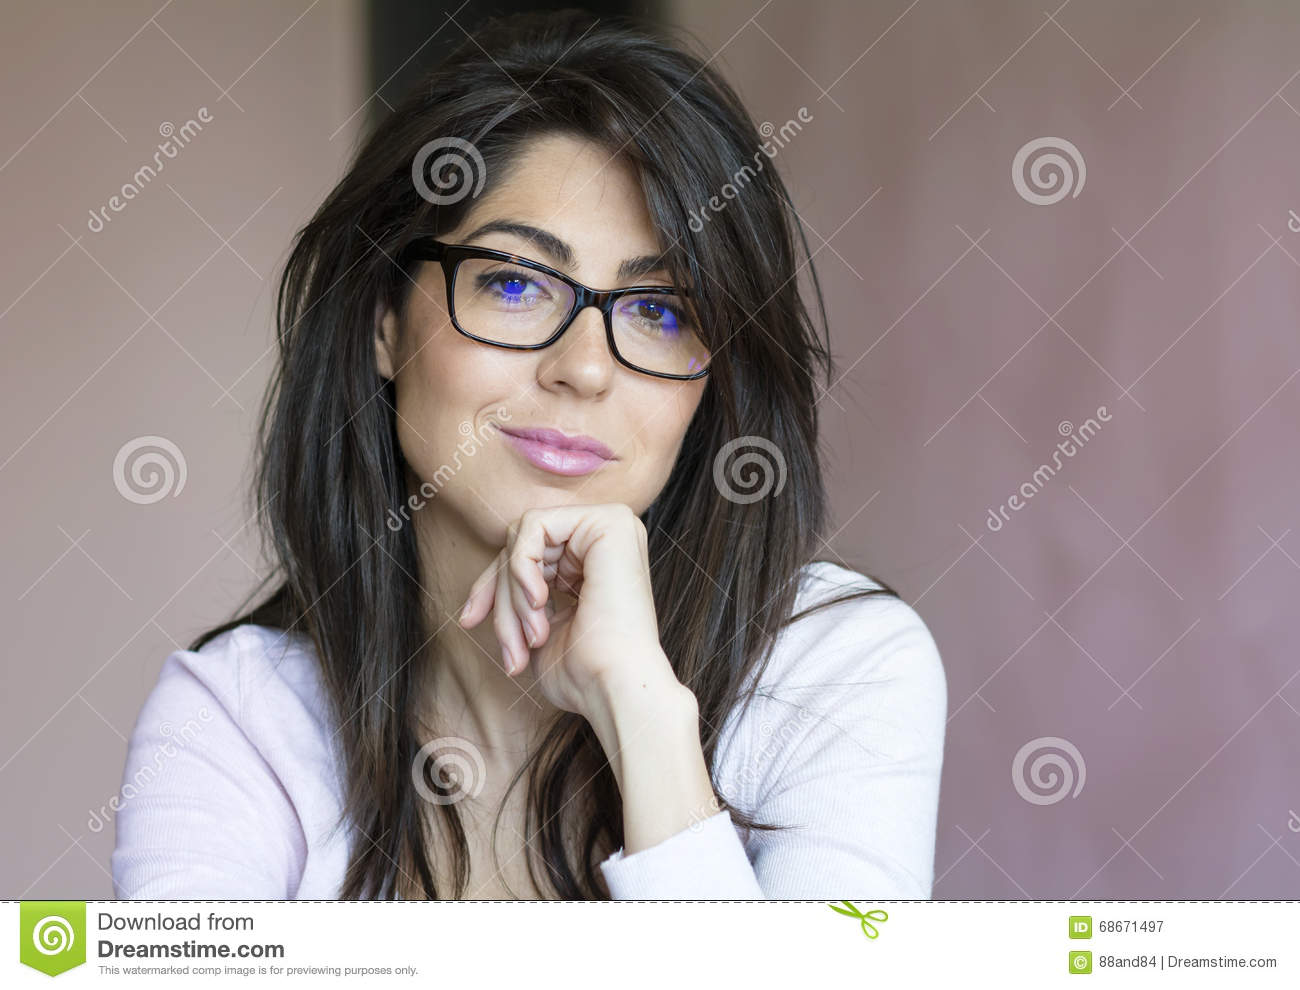 Portrait of beautiful young smiling woman with modern eyeglasses